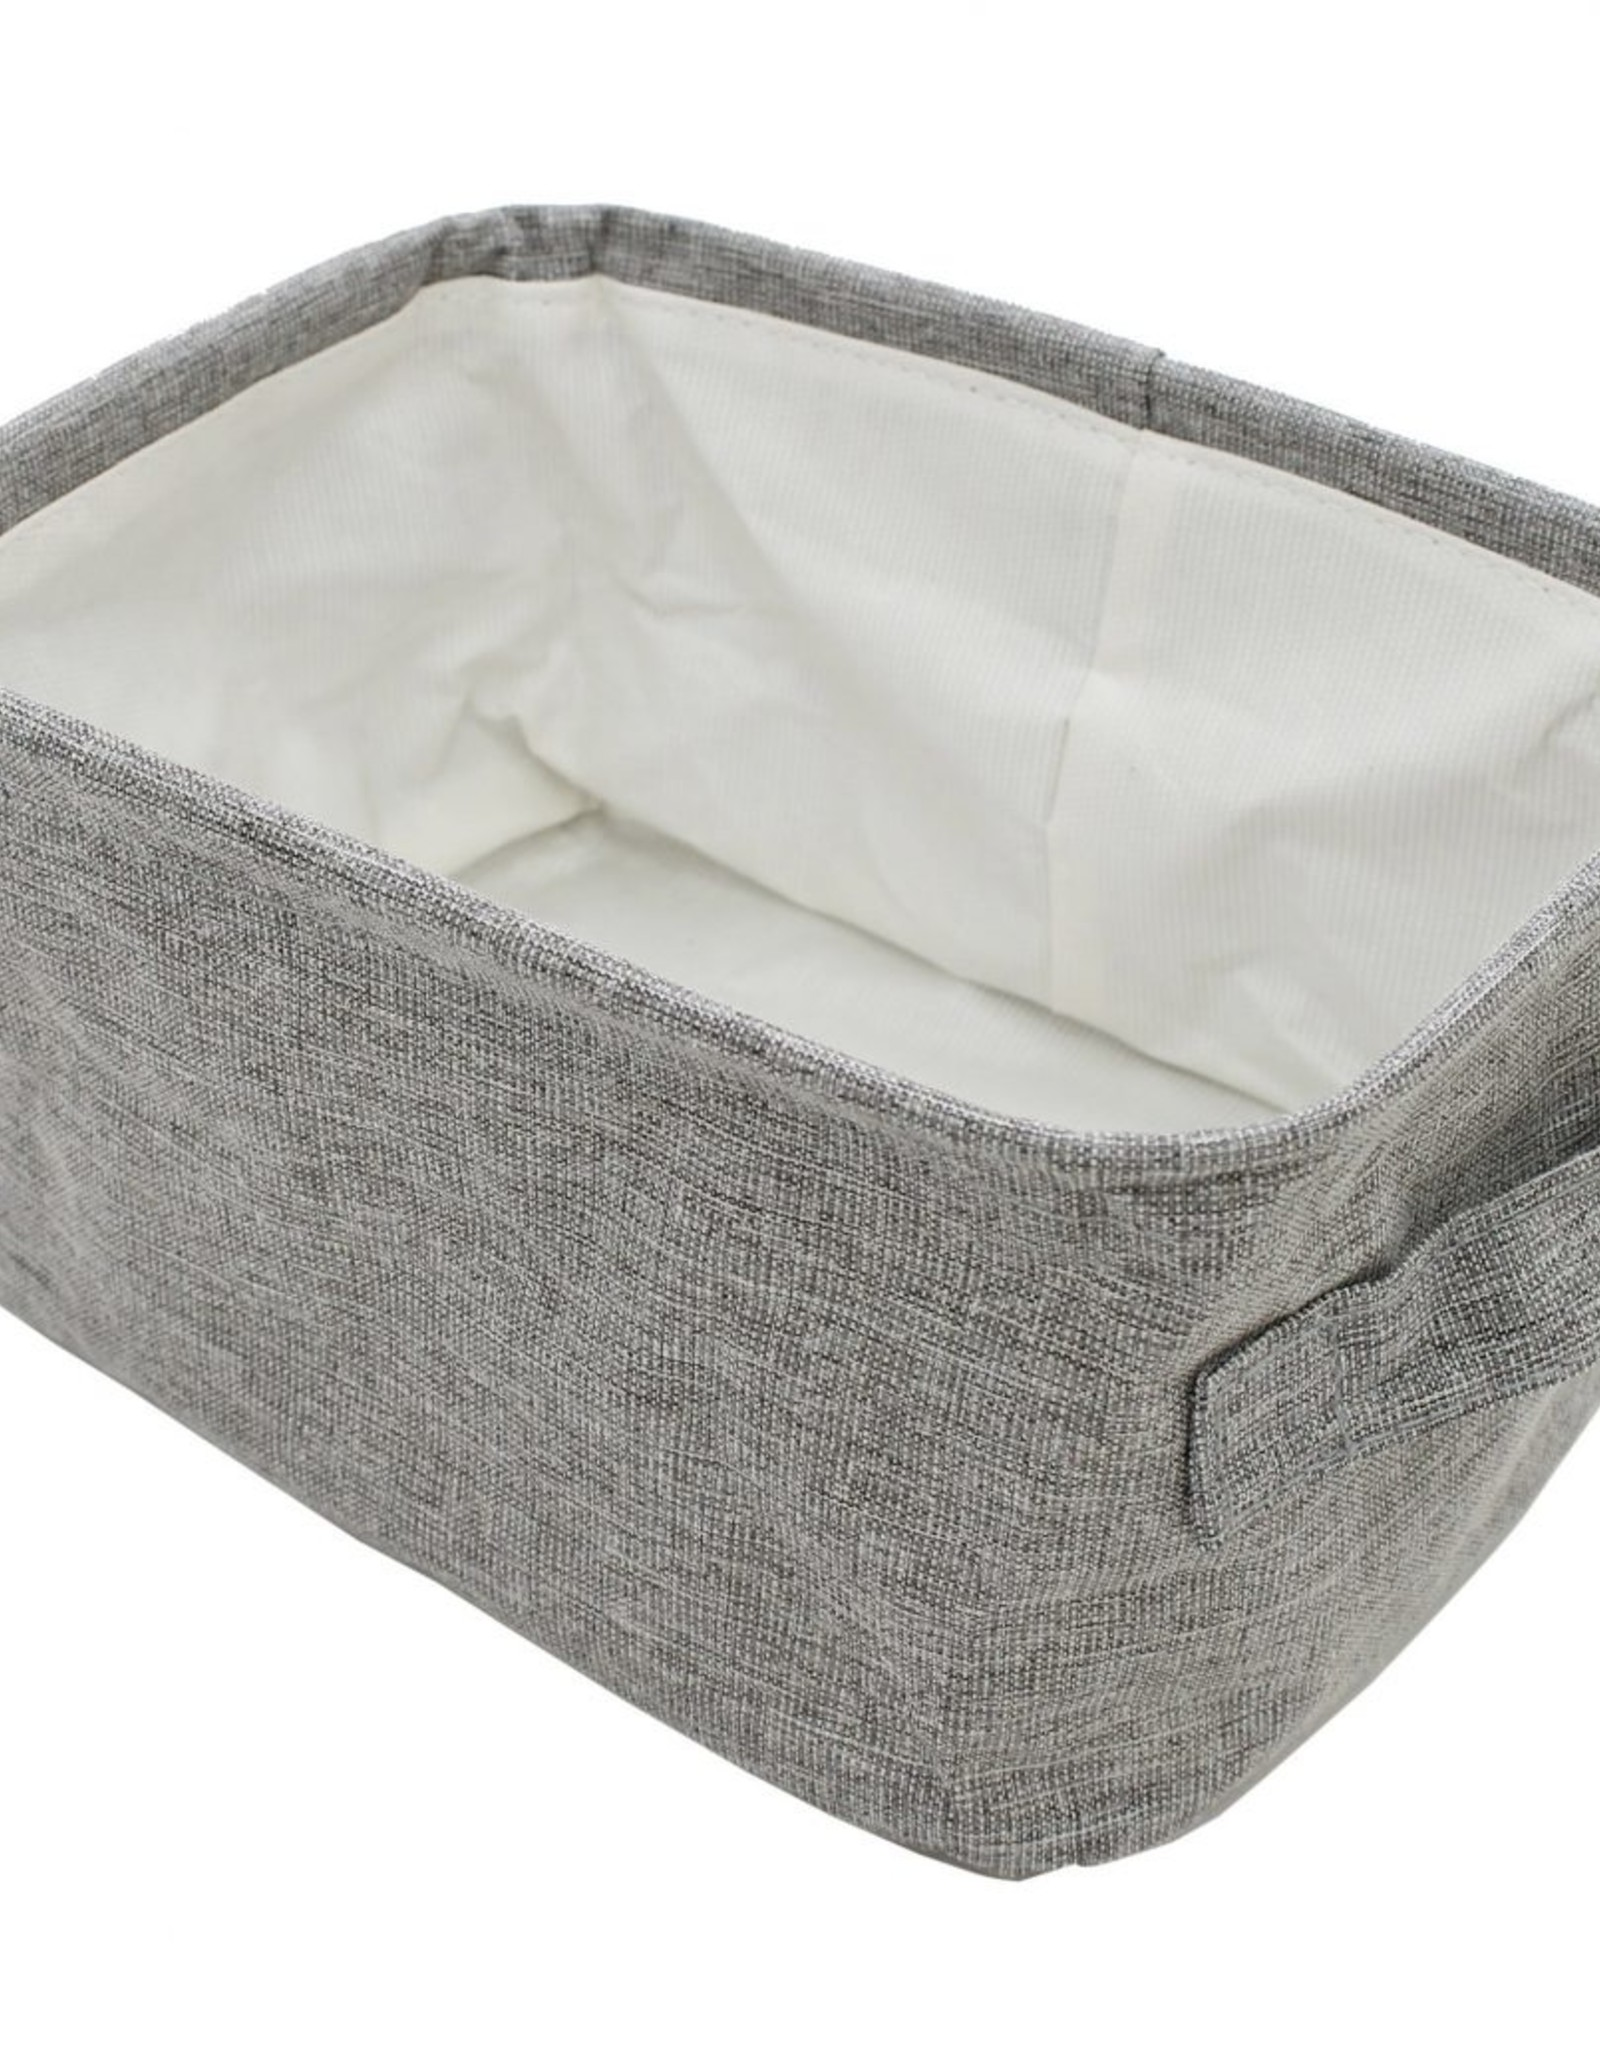 """Cathay Basket Cathay Grey Rectangle 12""""L 10-2446"""